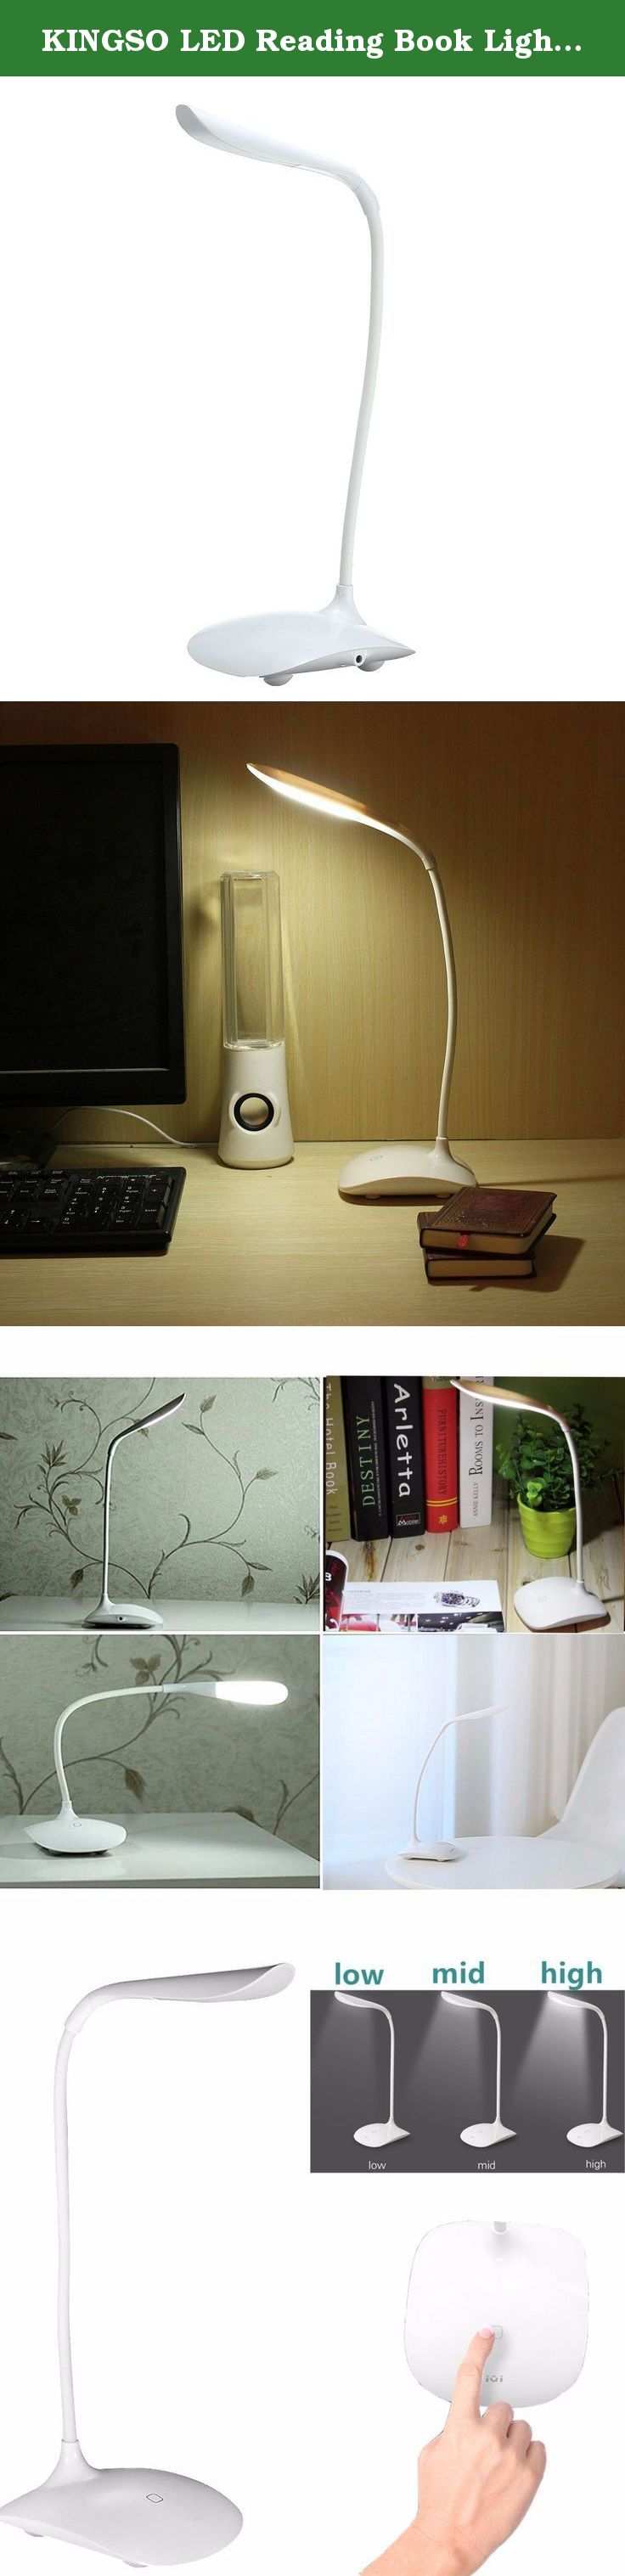 kingso led reading book light rechargeable usb touch sensor